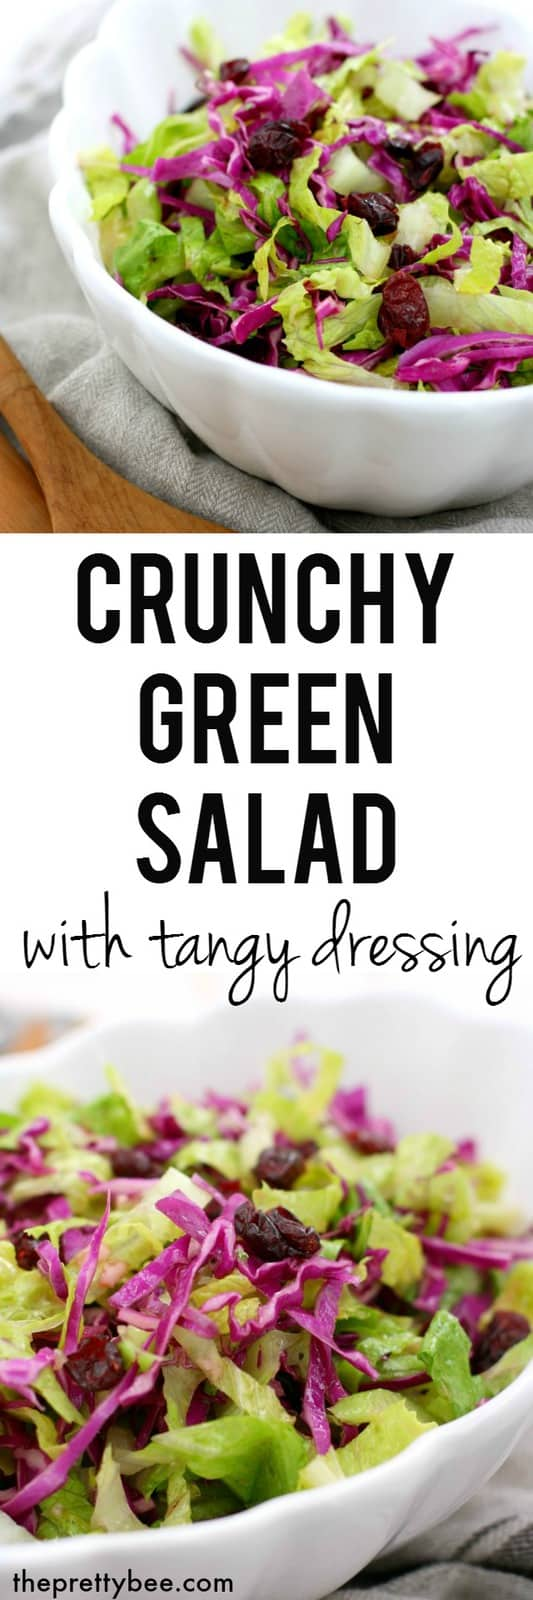 Delicious, easy, flavorful crunchy green salad with a tangy dressing. Perfect for Thanksgiving! #vegan #glutenfree #dairyfree